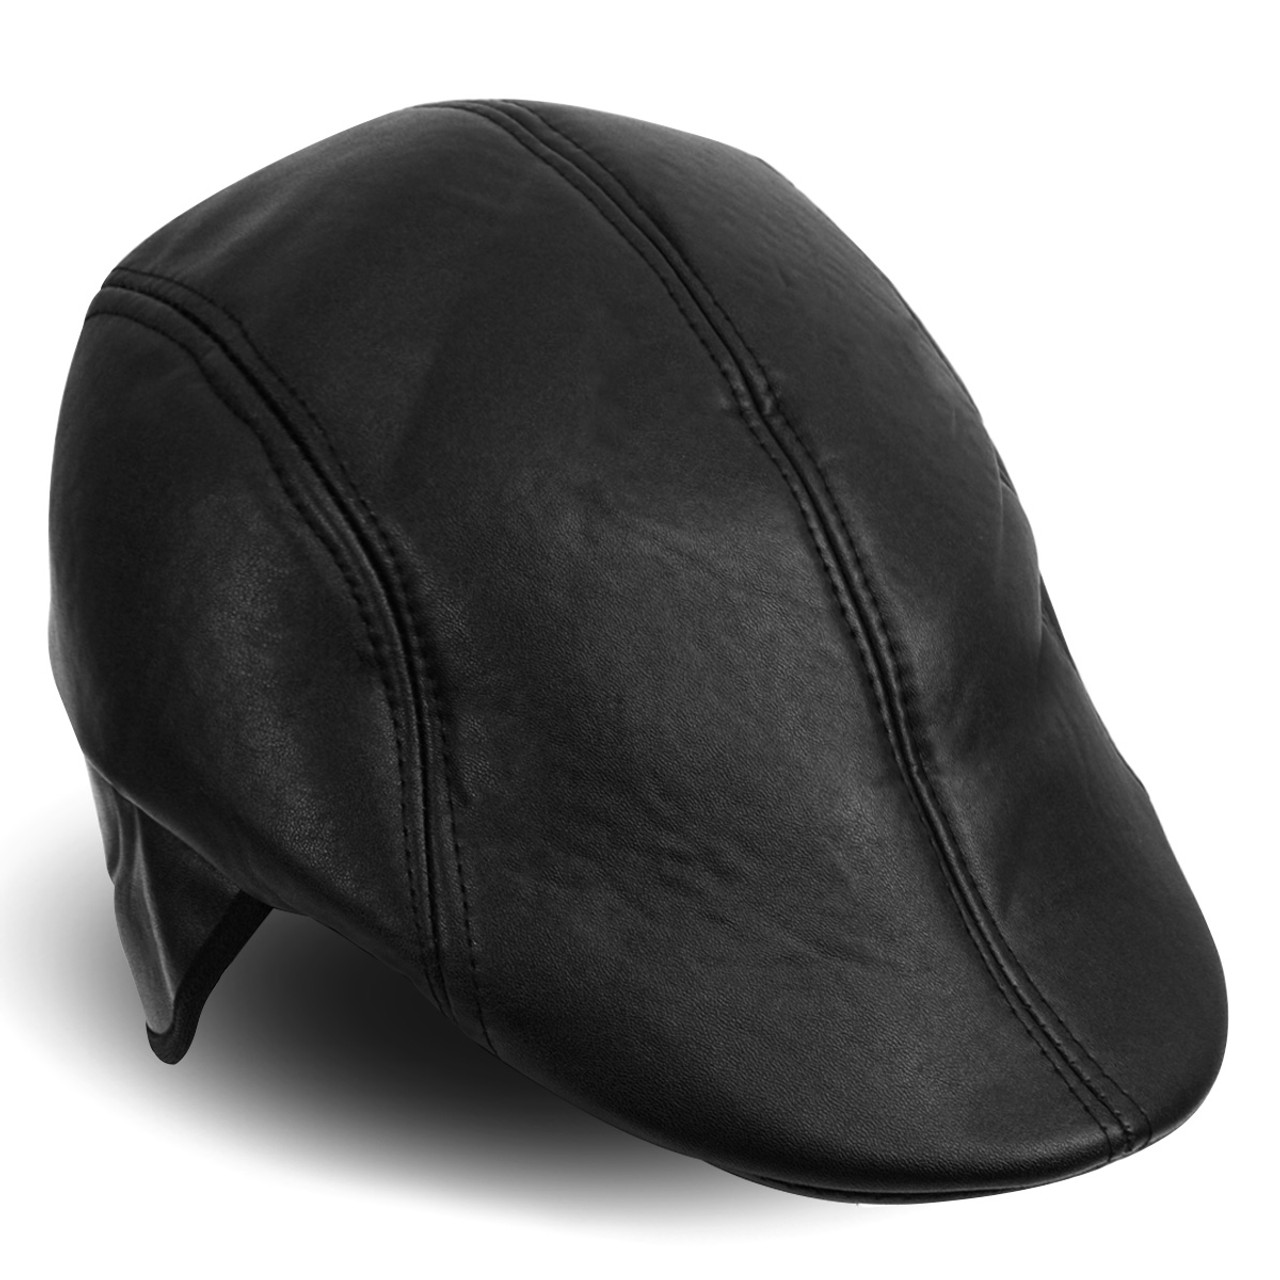 518c20f579edb9 Fall/Winter Traditional Leather Ivy Hat with Ear Flaps - H177306 ...